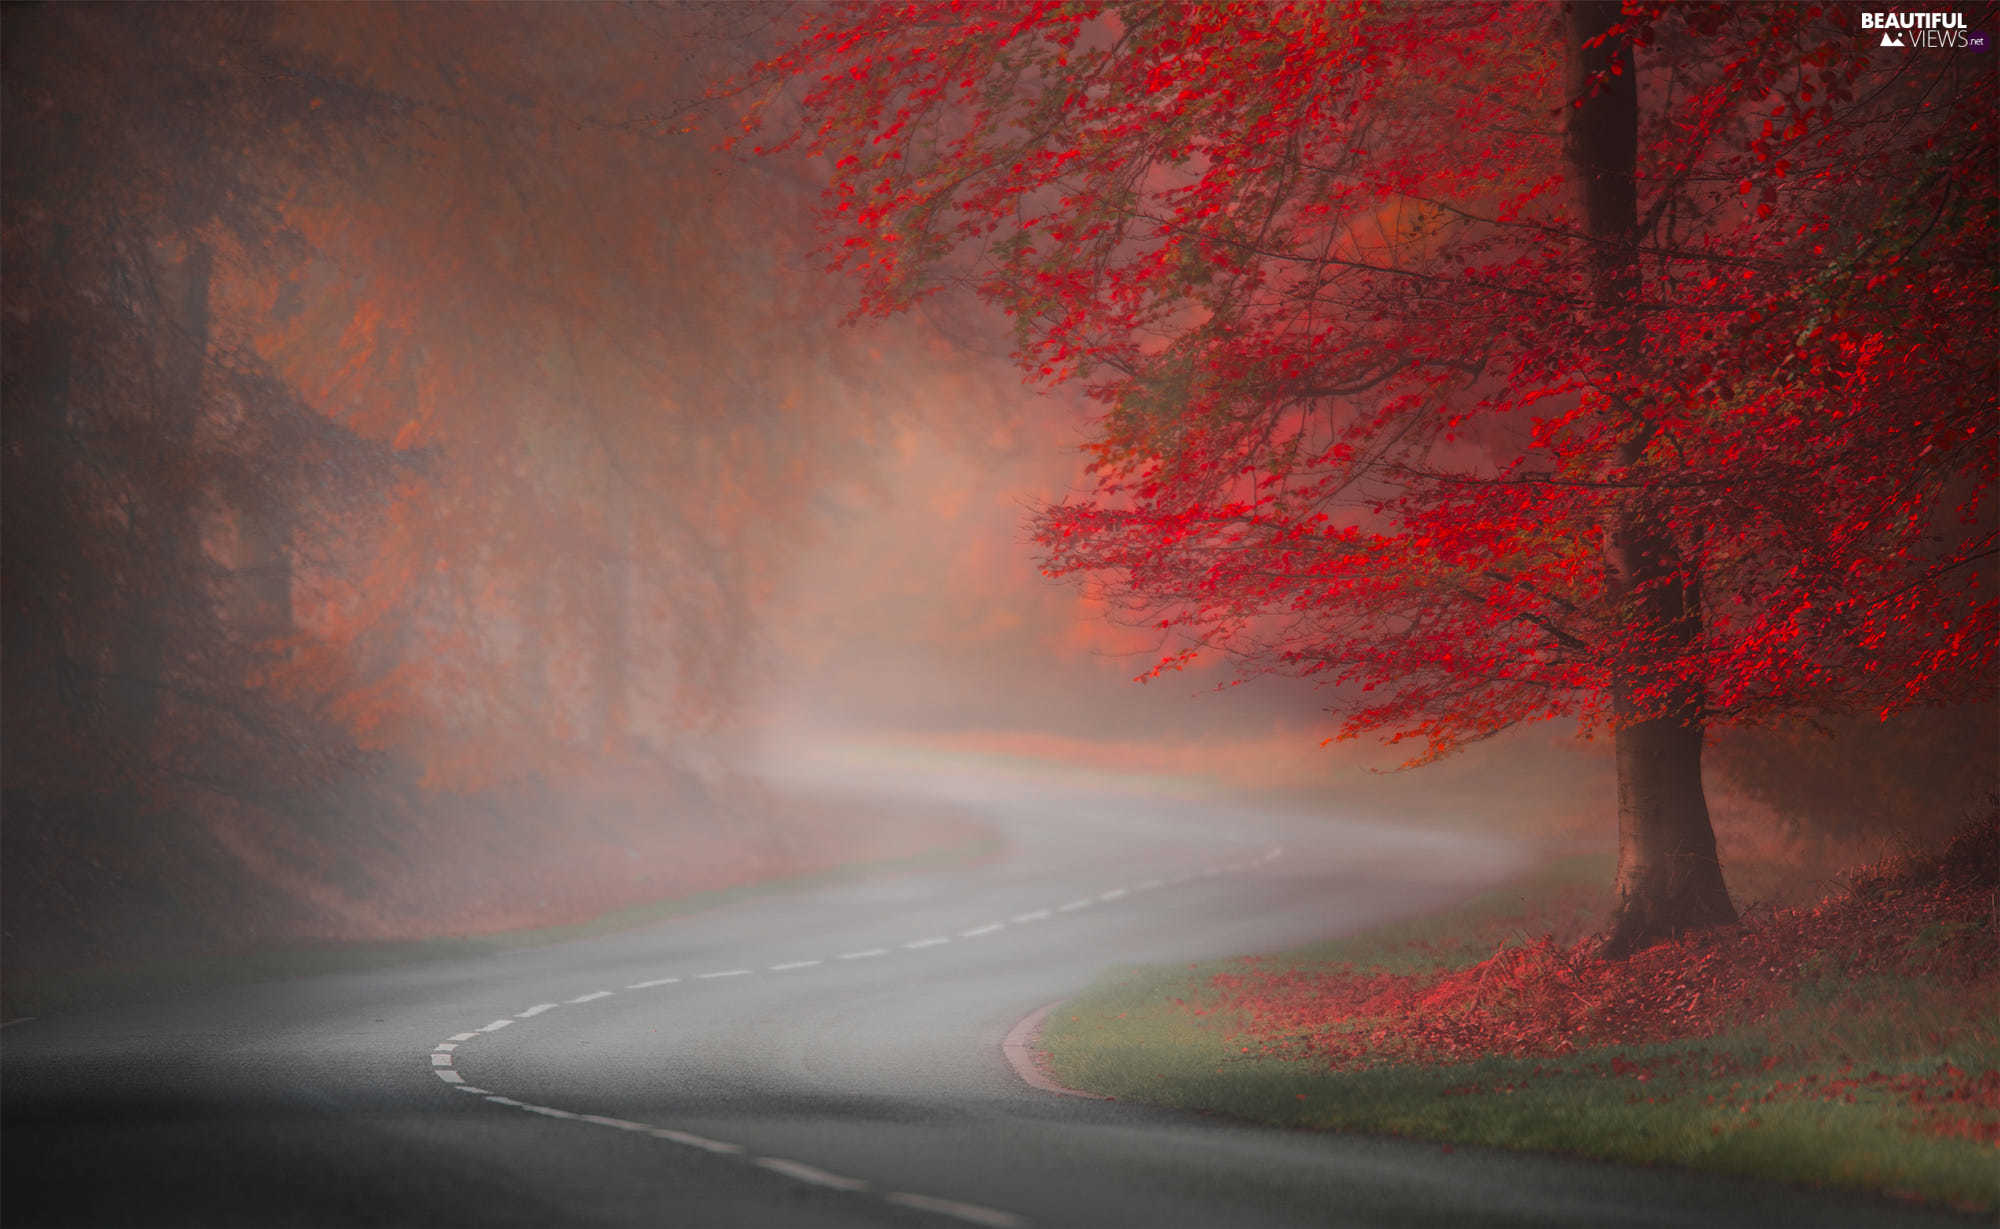 Fog, Red, viewes, autumn, Leaf, Way, trees